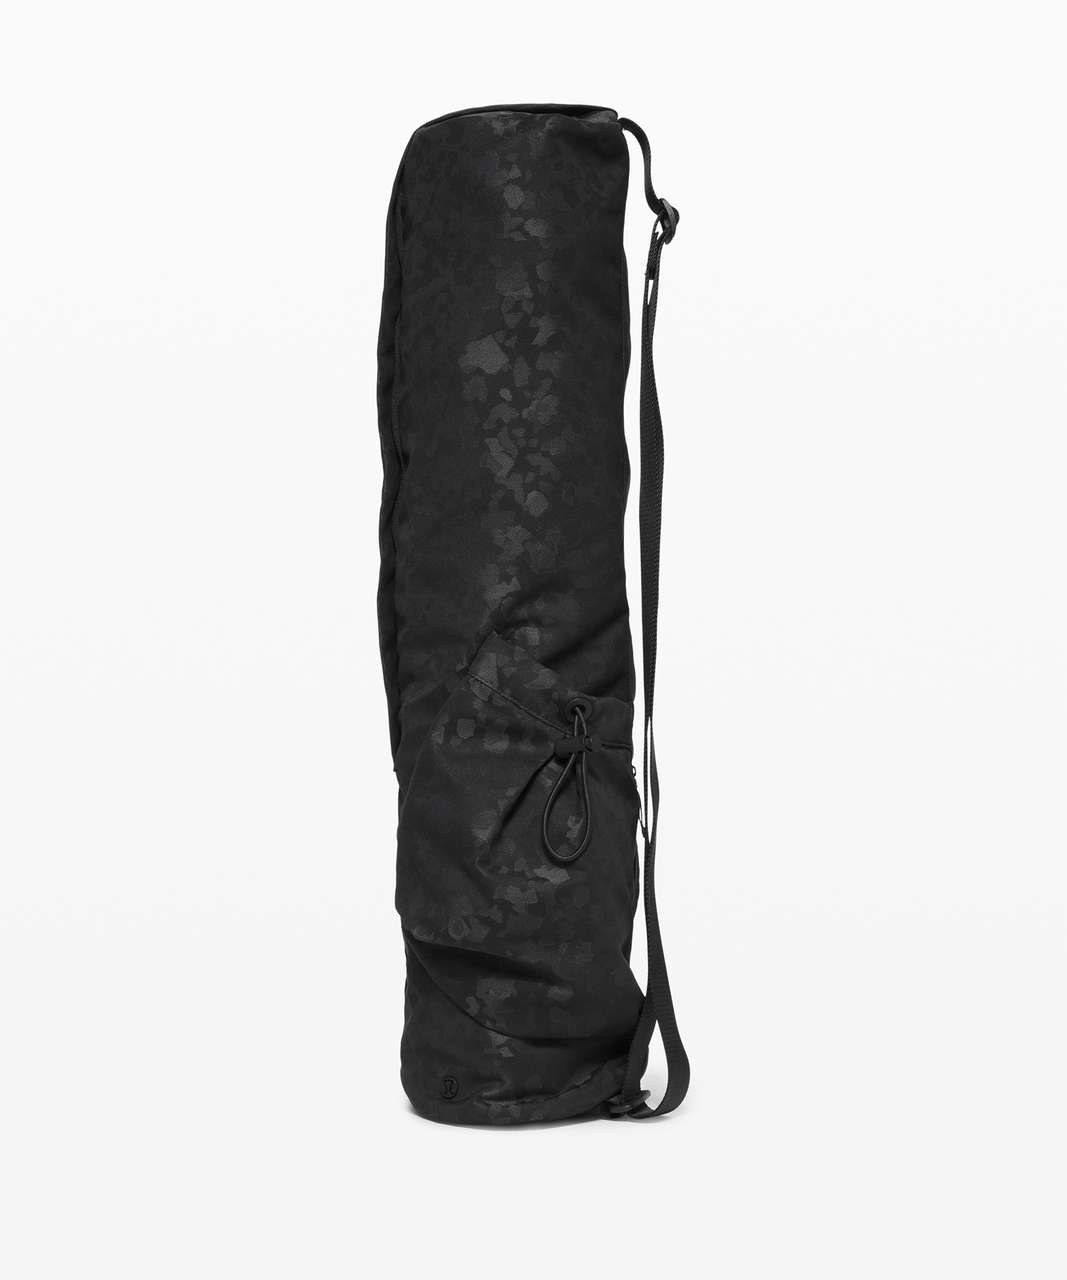 Lululemon The Yoga Mat Bag *16L - Fragment Camo Jacquard Black Deep Coal